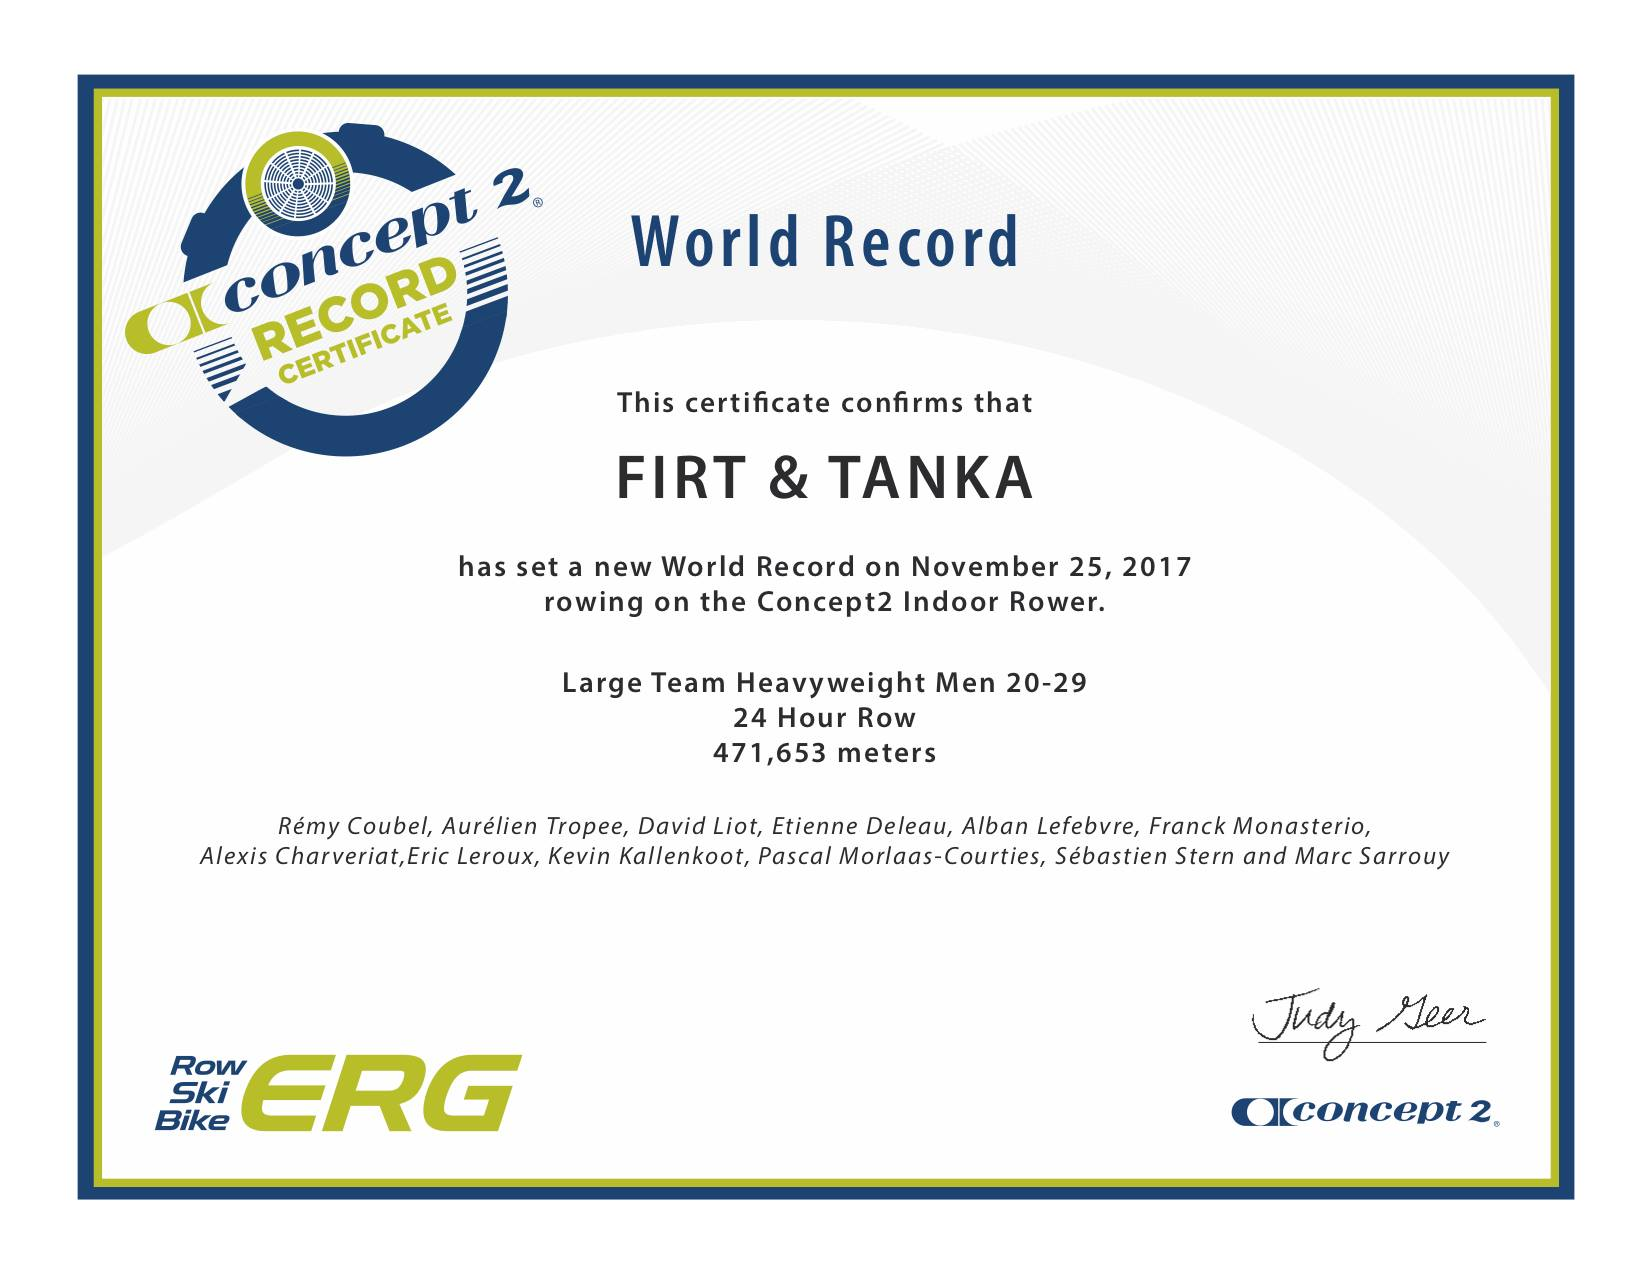 firt-et-tanka-world-record-24h-large-team-25-11-2017